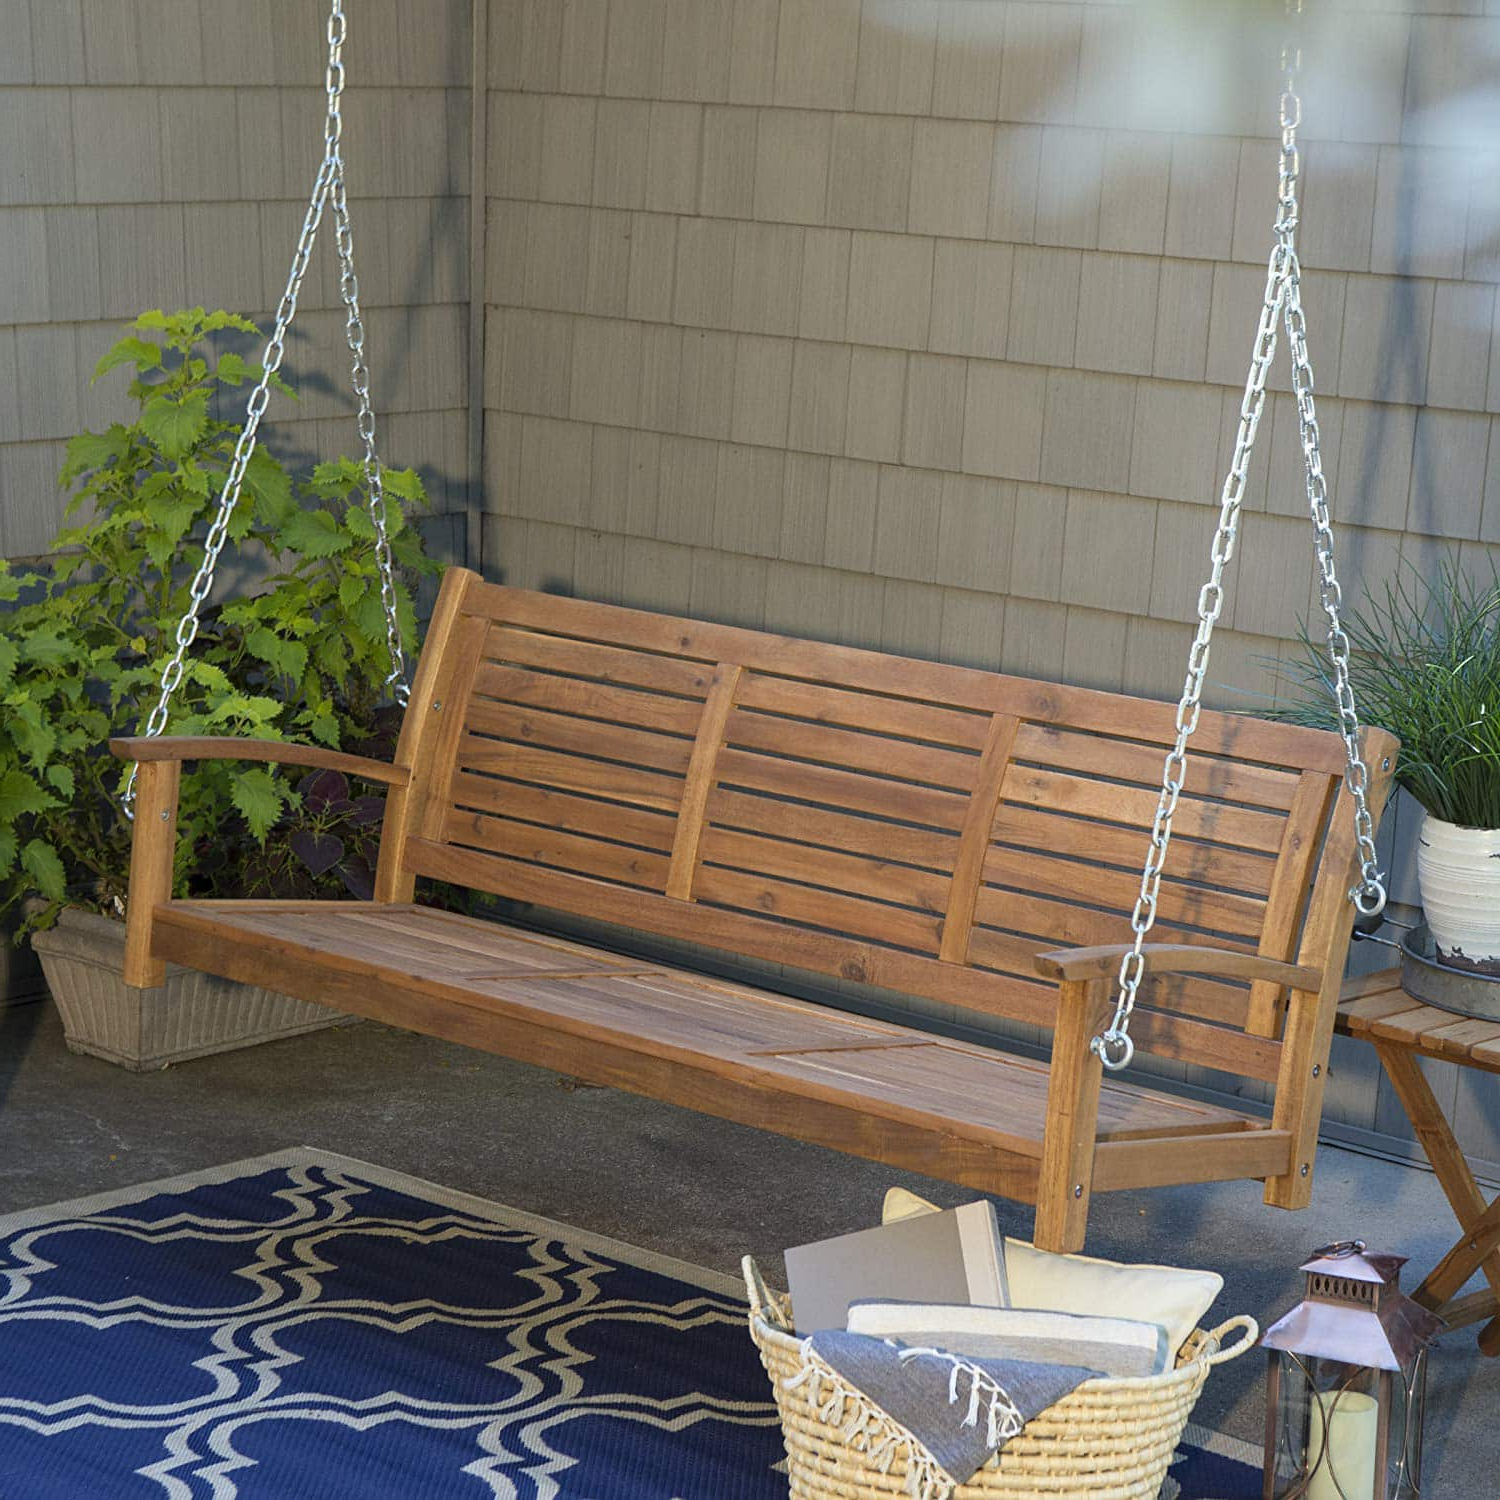 2020 Top 10 Best Porch Swings In 2020 Reviews (View 21 of 30)